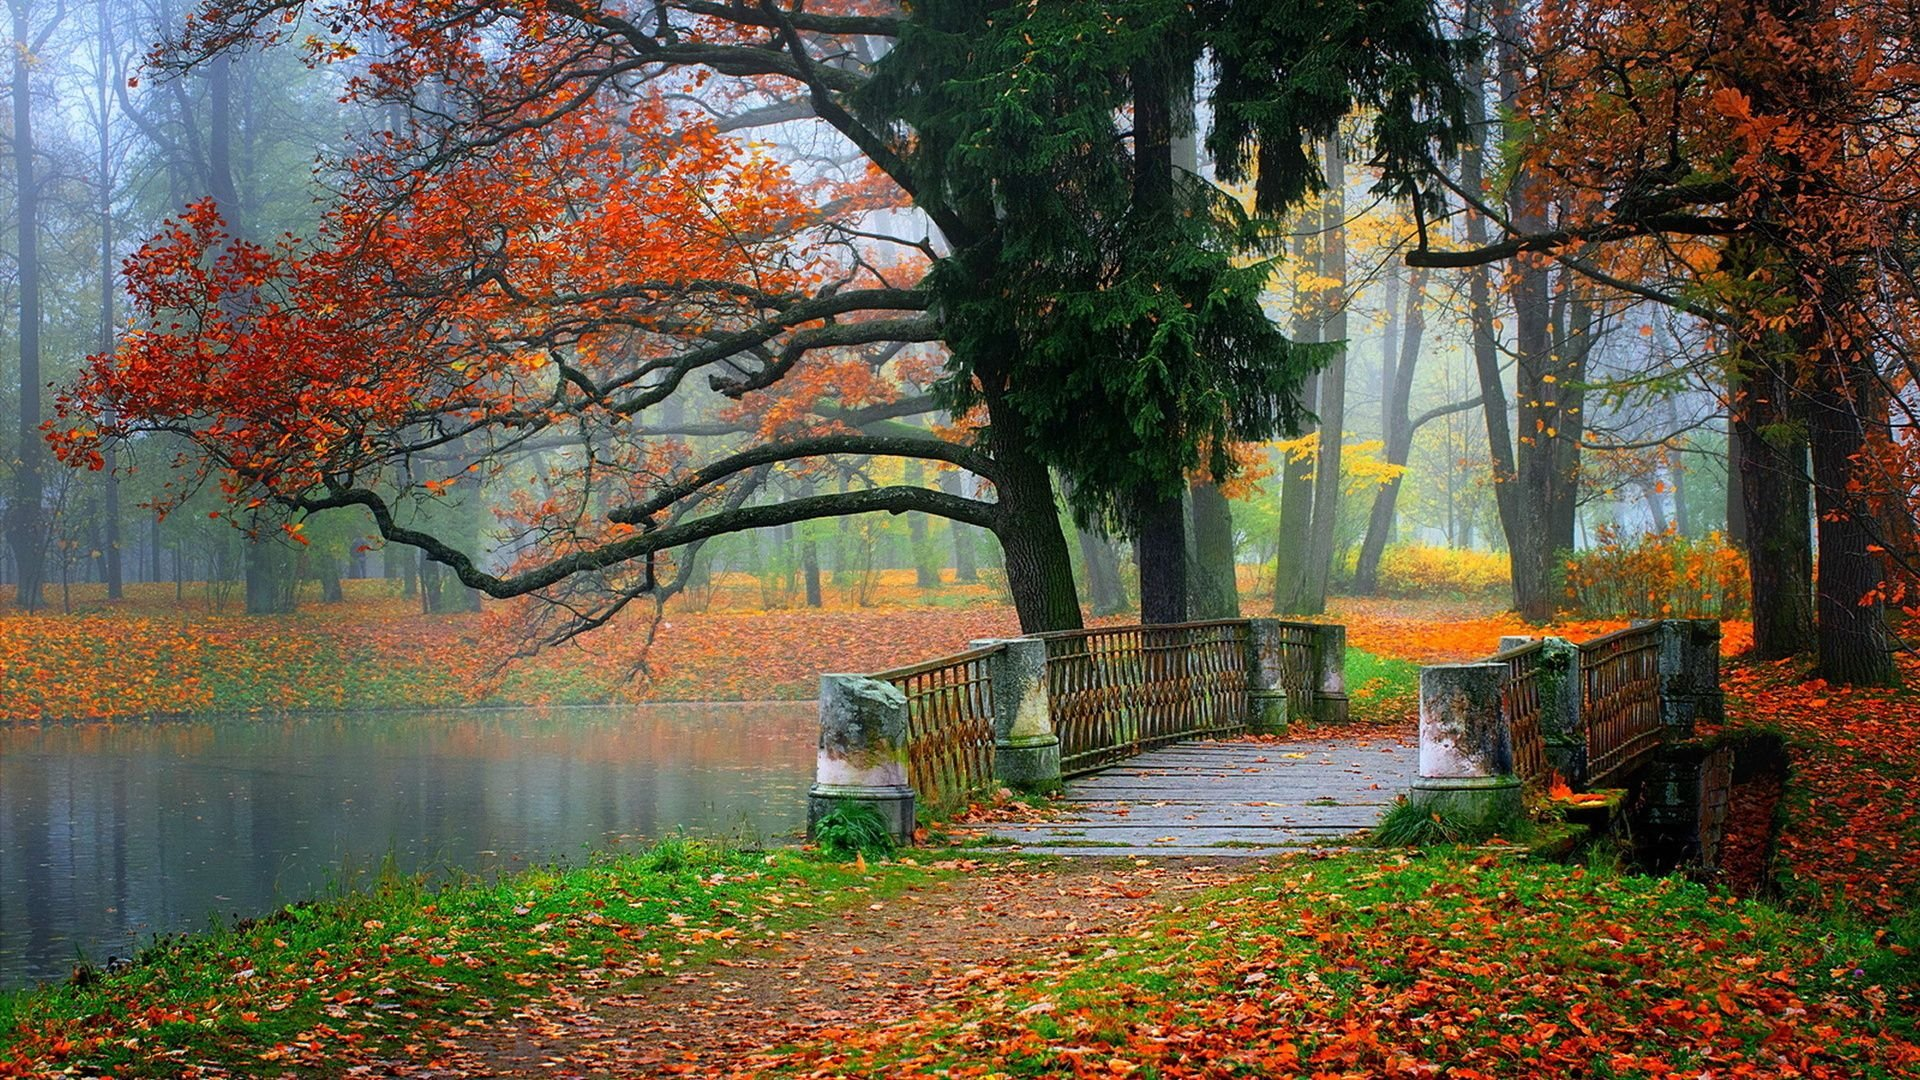 nature fall bridge colorful amazing natural gorgeous peace perfect dream poster 5x11 4x6